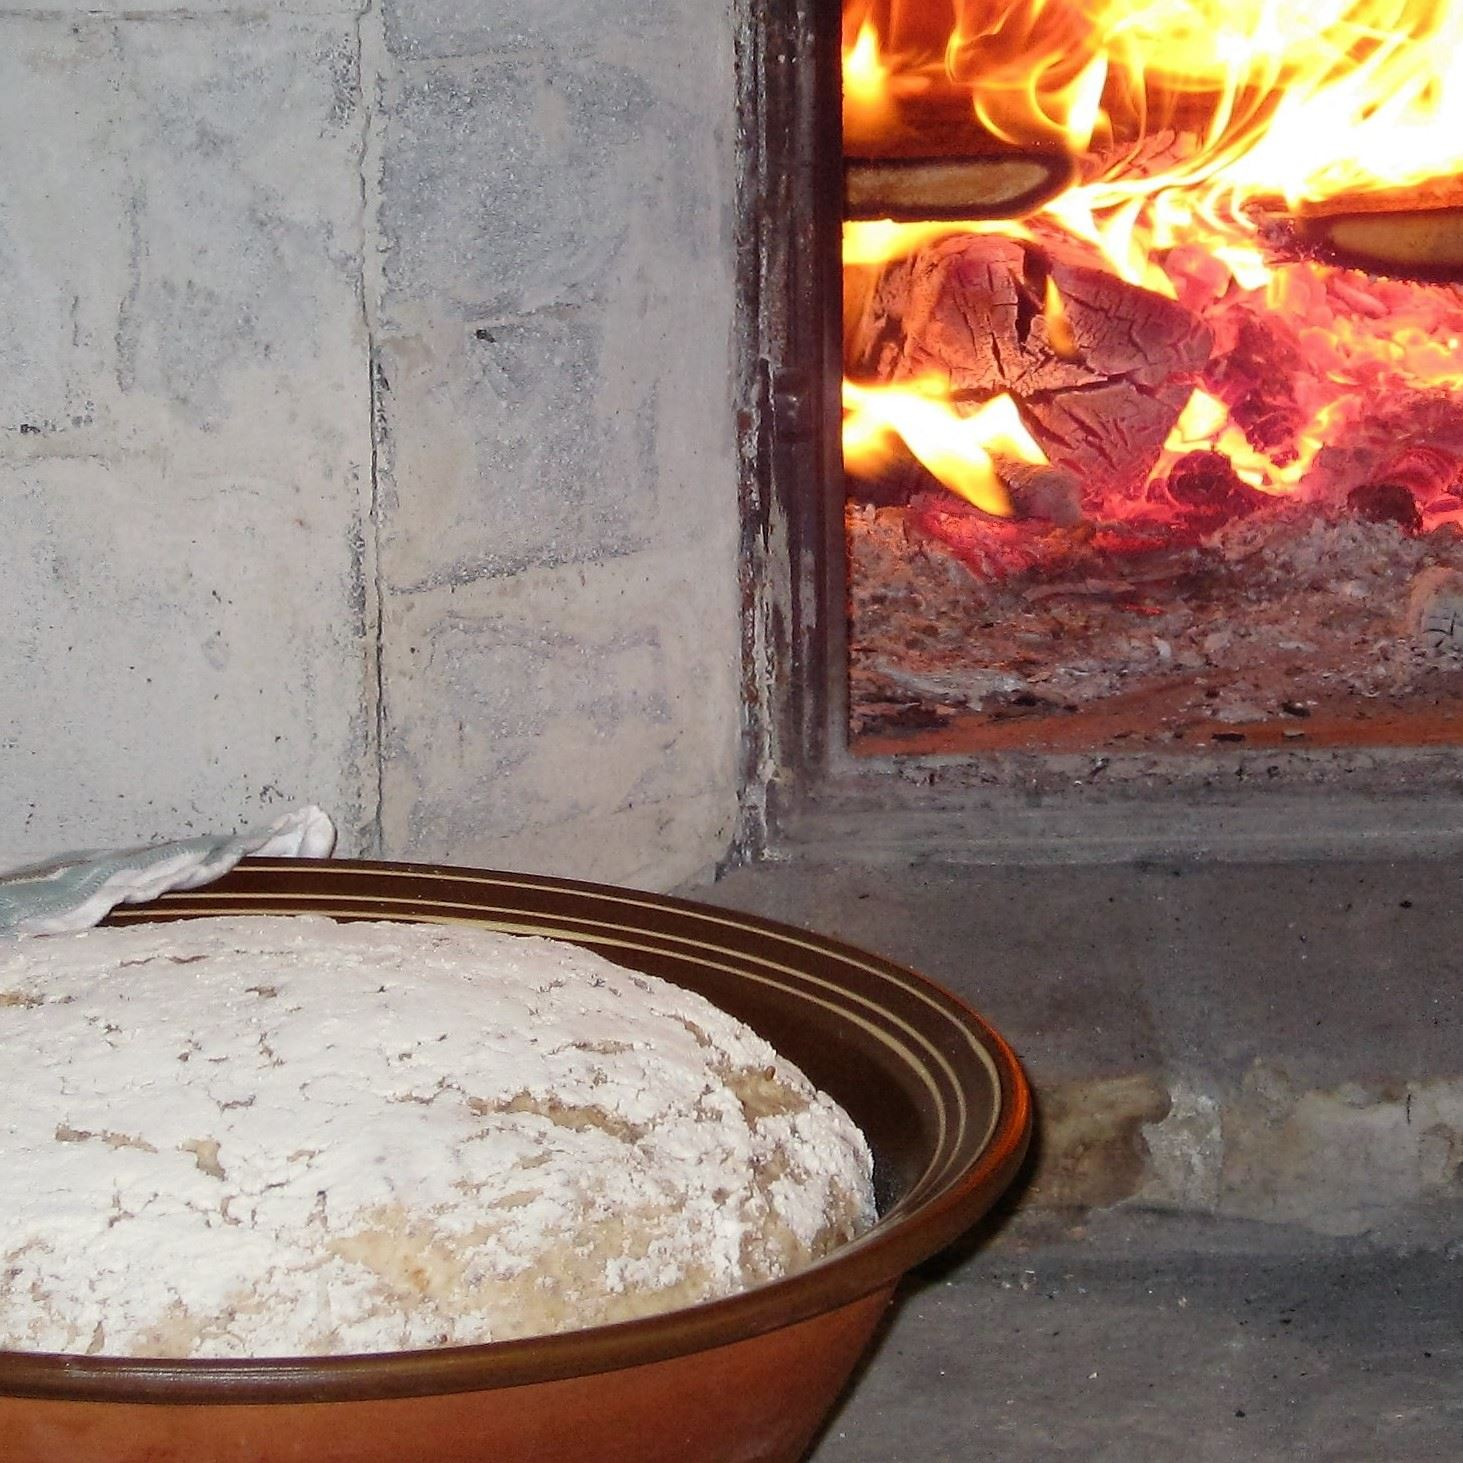 Baking bread in the stone oven